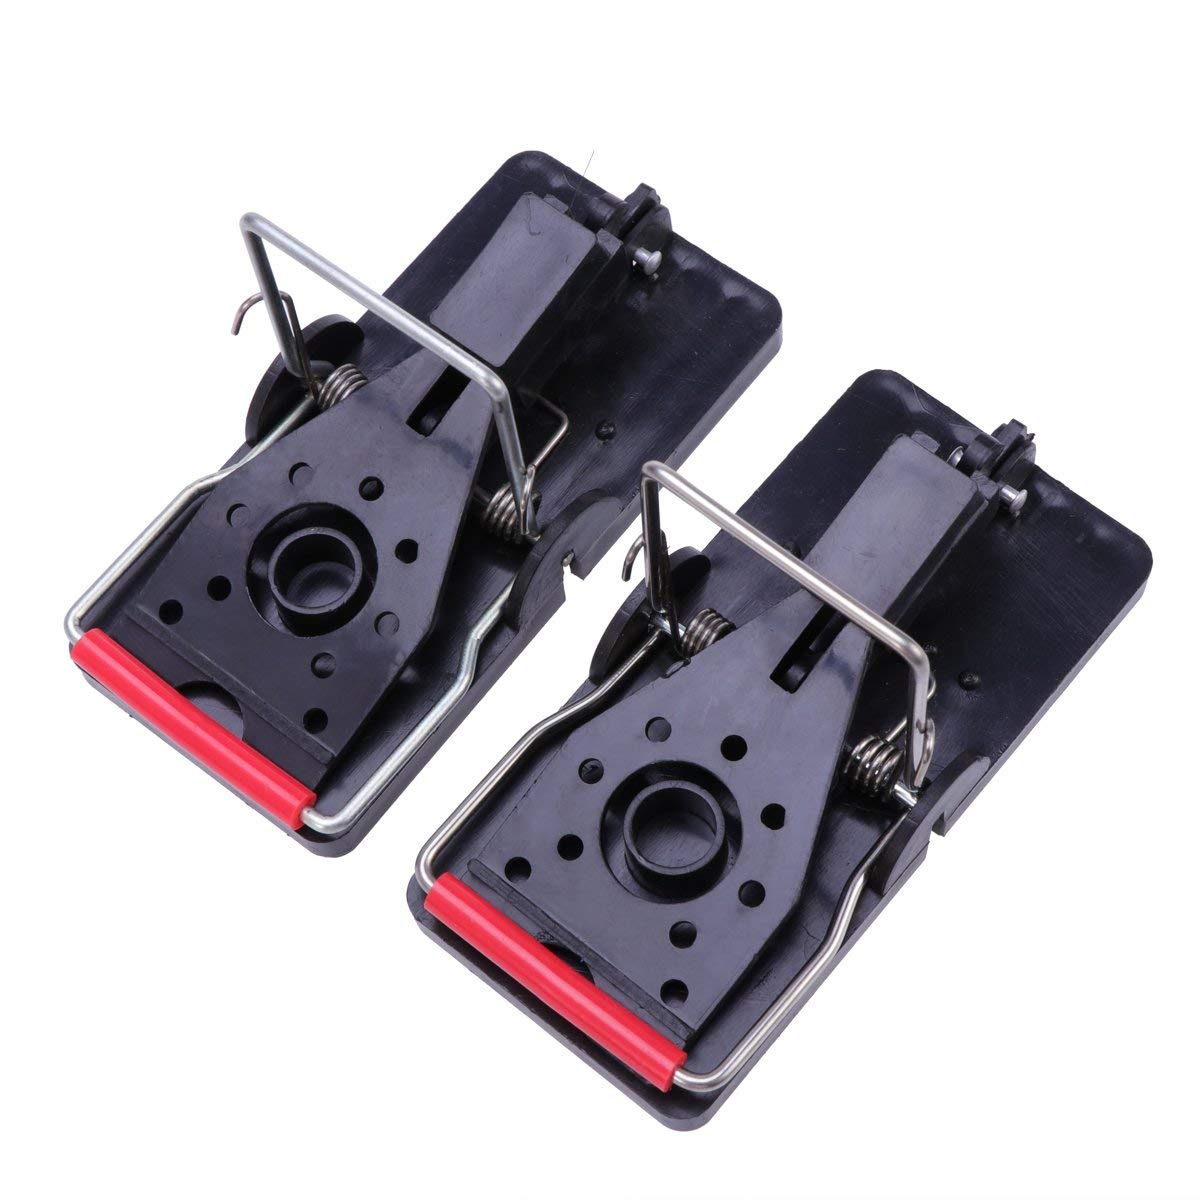 badb0243f6e Get Quotations · OUNONA 2pcs Plastic Snap Mouse Trap Rodent Mouse Trap  Catcher for Mouse Control Home Use